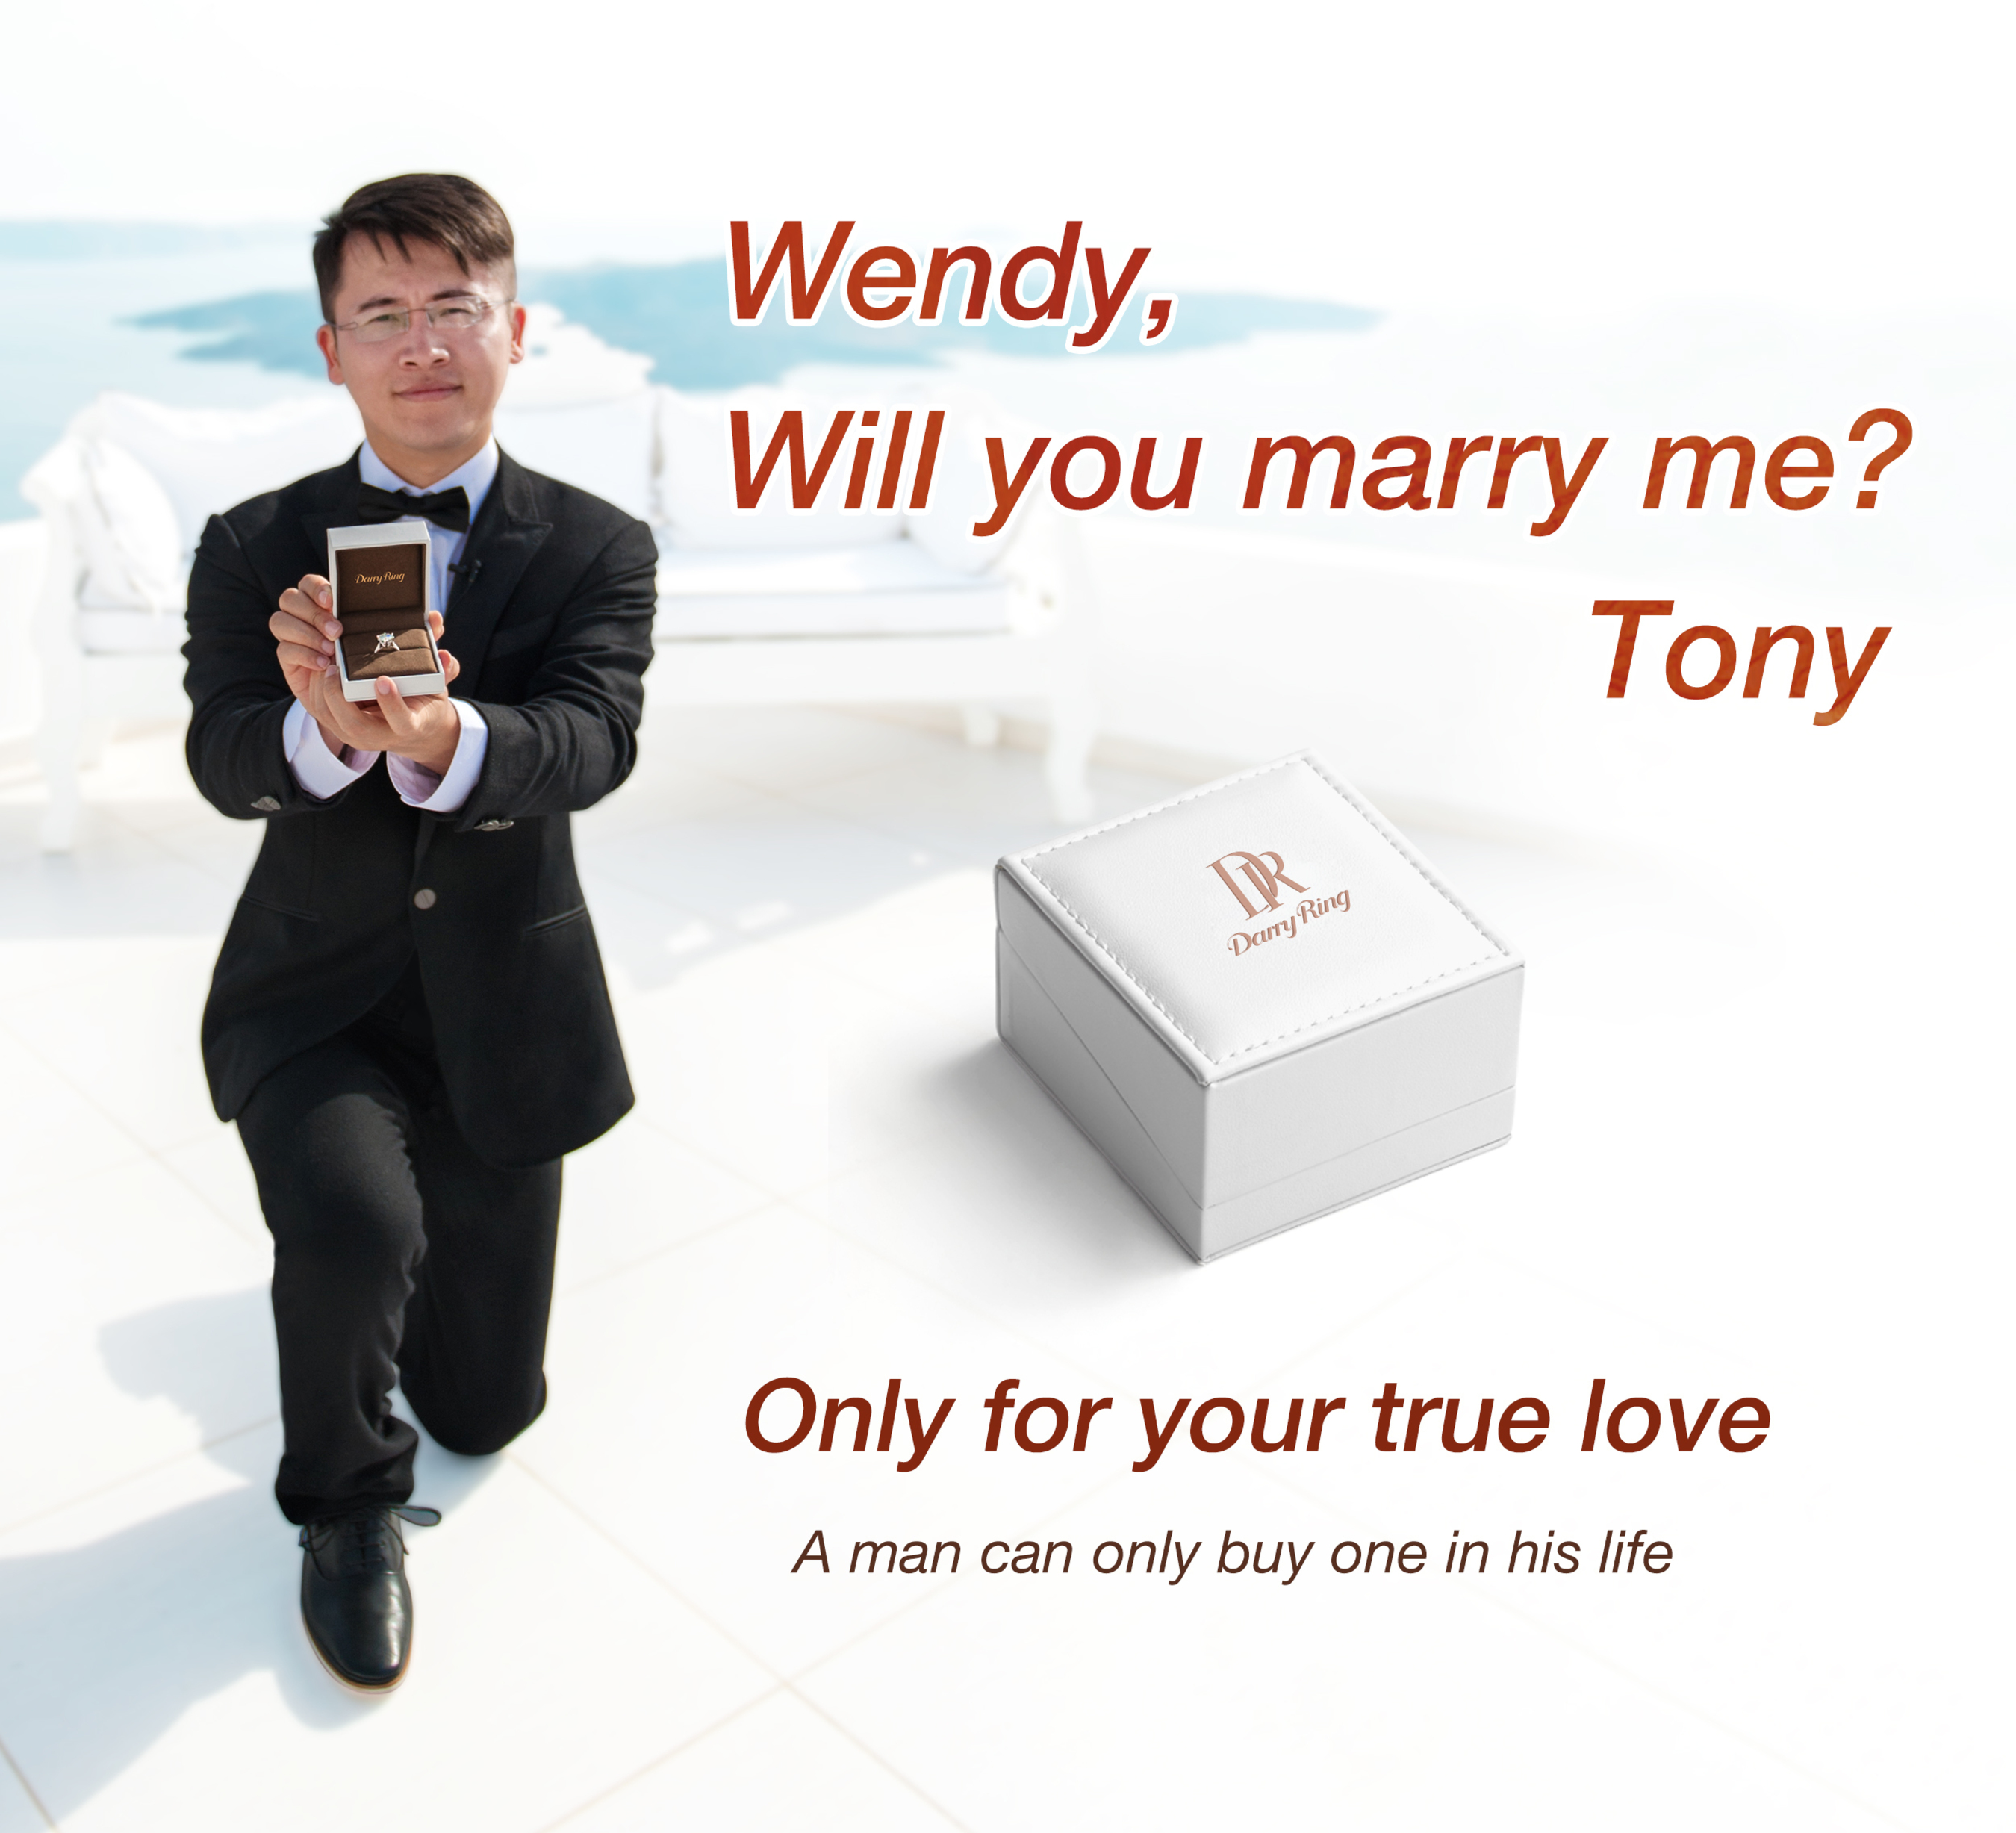 Darry Ring is a true expression of love - you can only own one in a lifetime